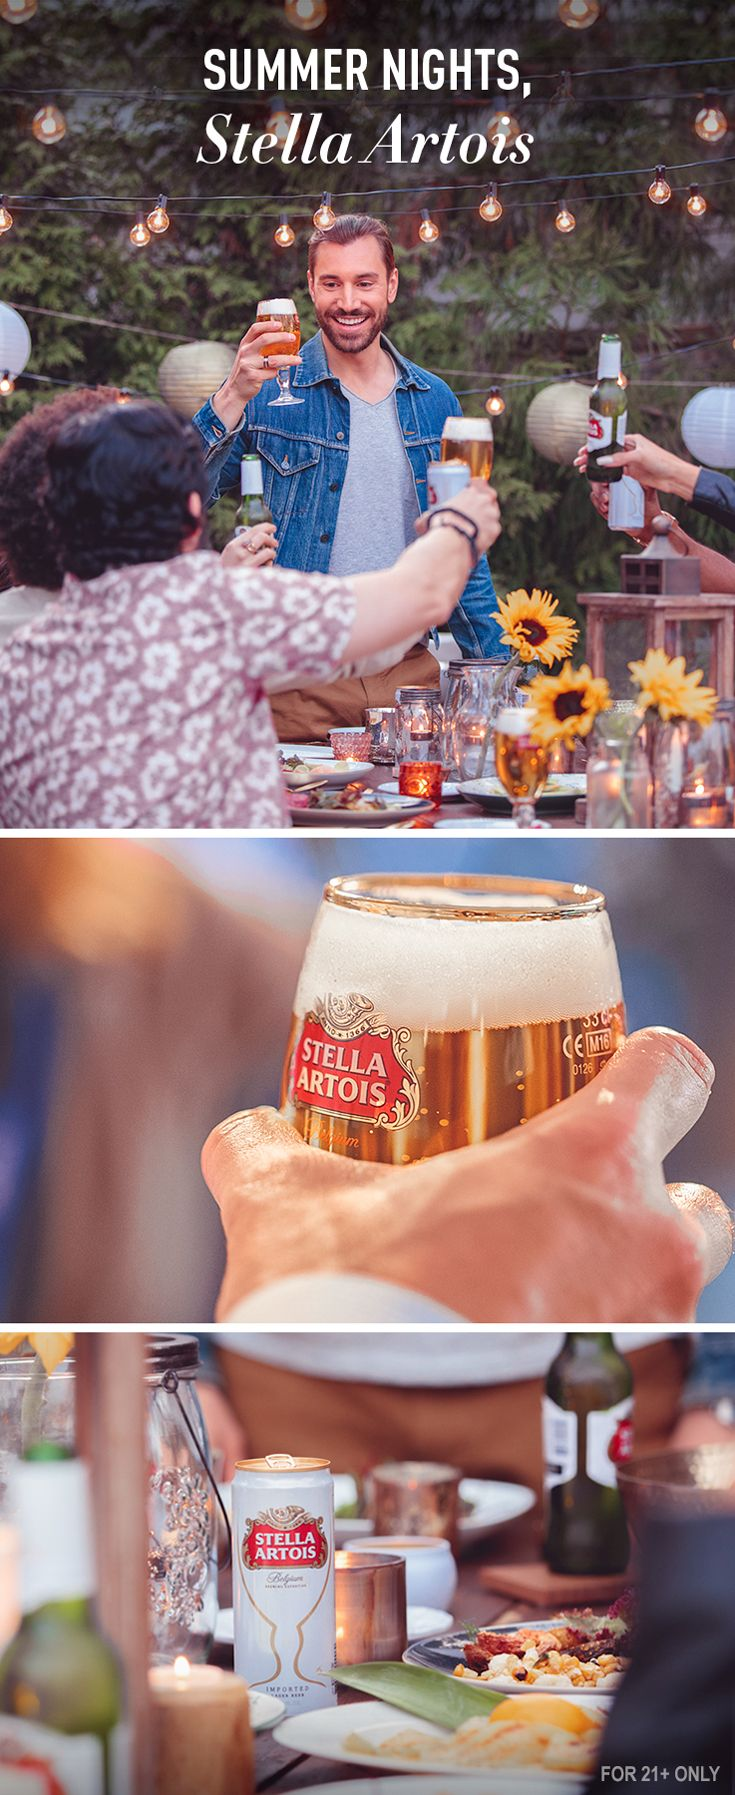 Every summer party should be special. With Stella Artois, feel inspired to make each warm night as memorable as the last. Encourage your guests to bring their own favorite dish, invite neighbors you've been meaning to meet, and share a playlist of classics everyone will enjoy.